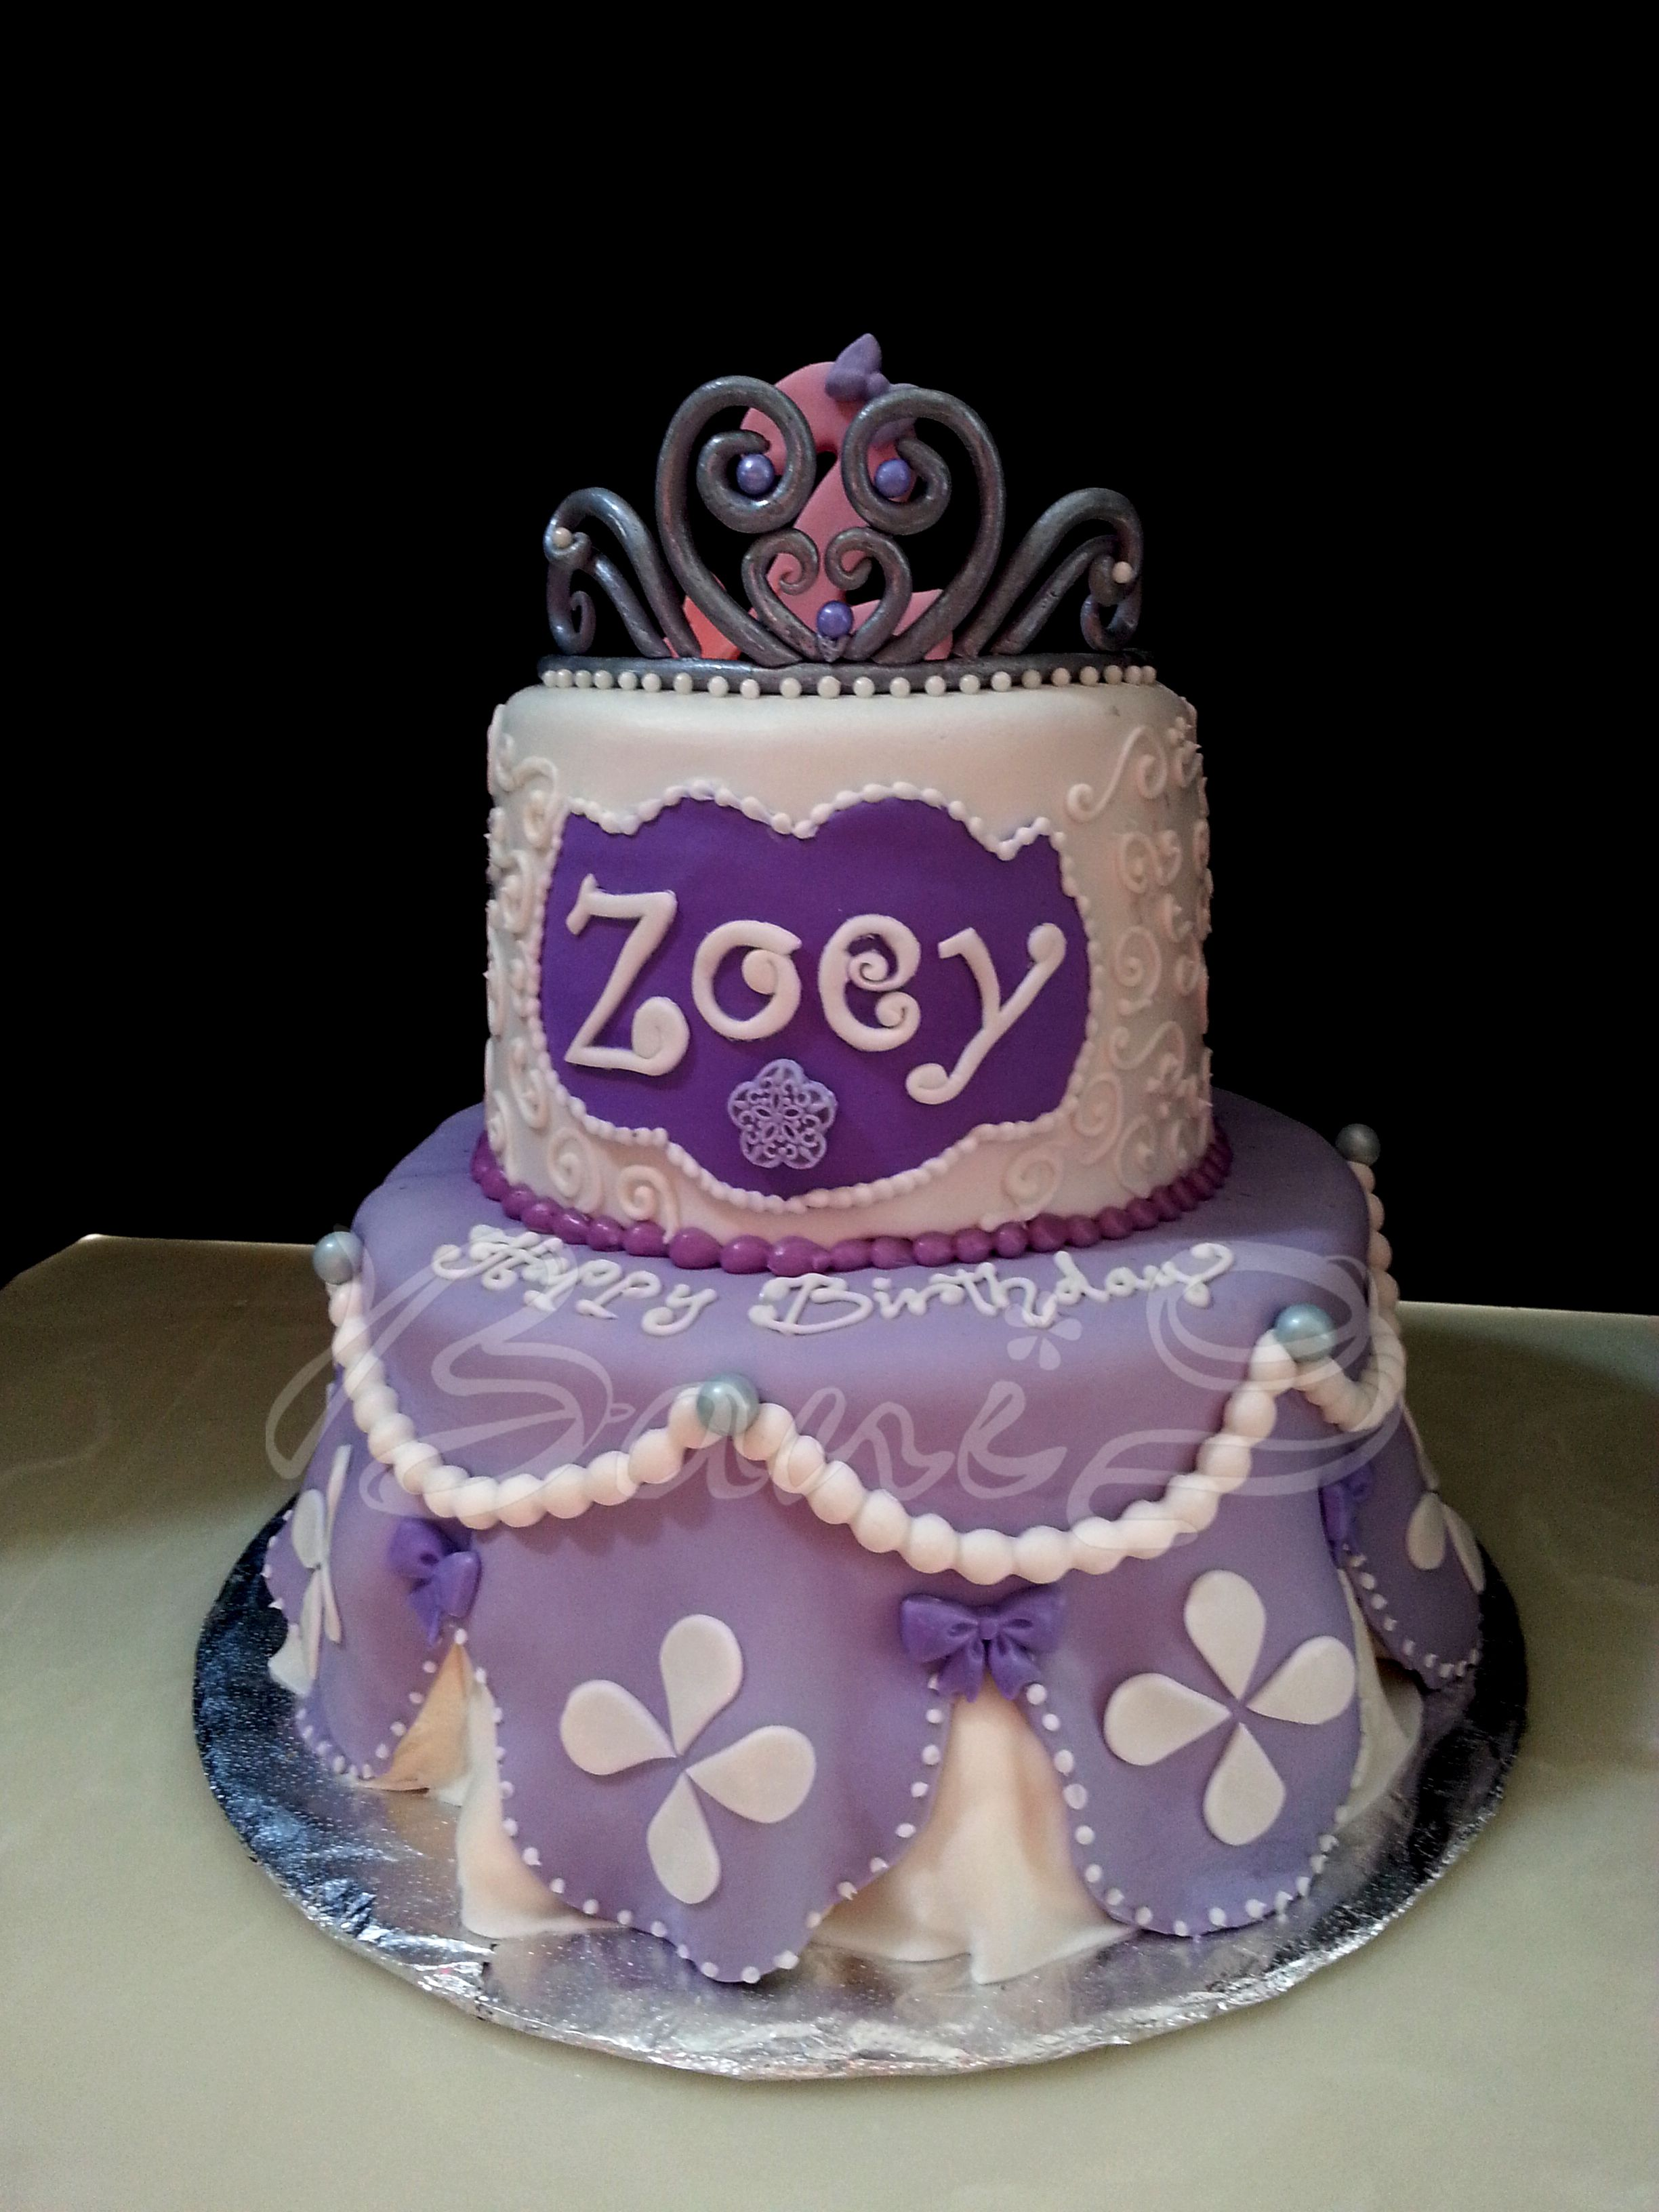 Sophia the 1st theme cake 2nd birthday cake tiaradisney princess